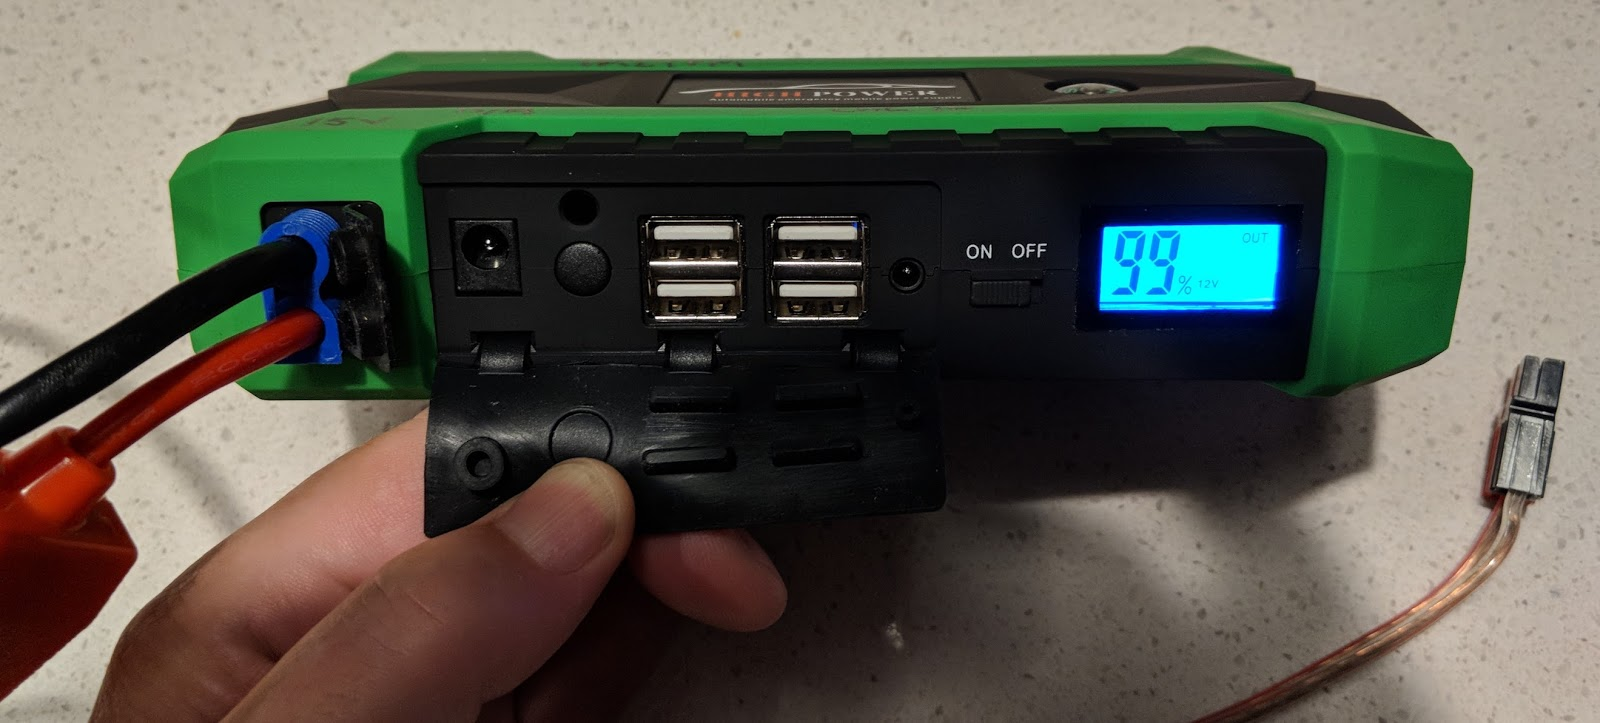 marxy's musing on technology: Car jump starter for portable